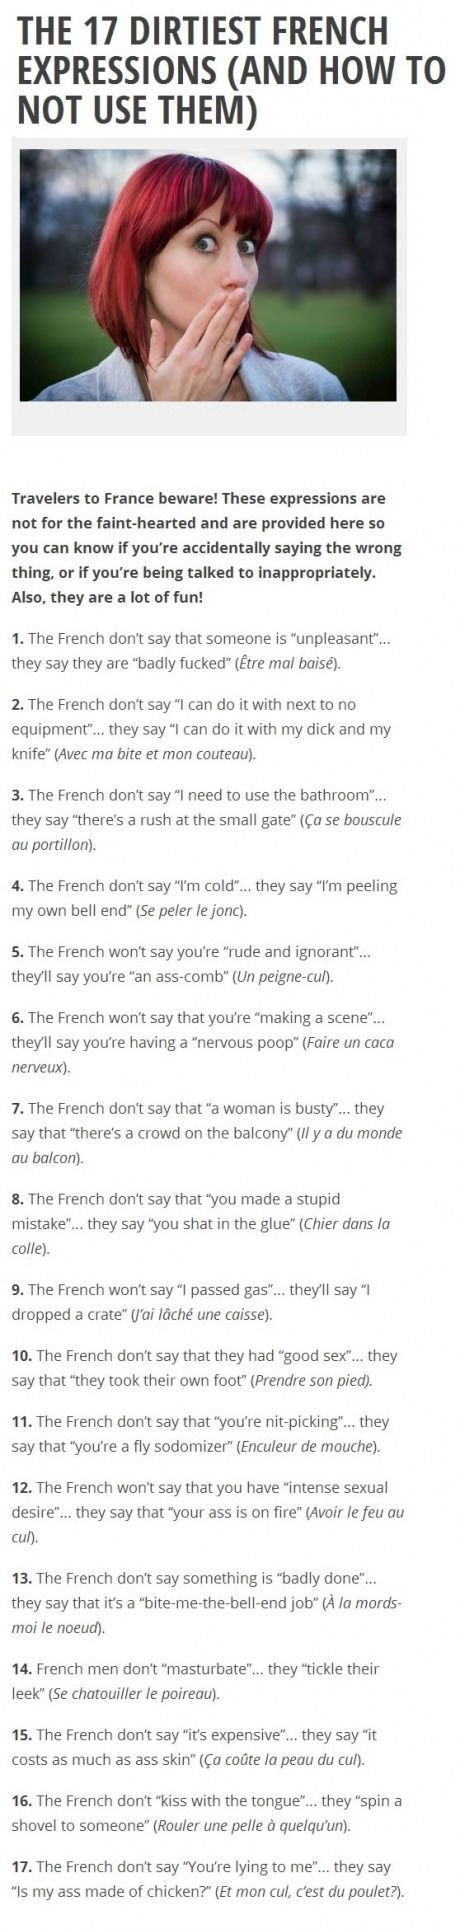 French - the most romantic language - has more meaning to it. These are some of their dirtiest expressions and how not to use them. #frenchfunny #howtolearnfrench